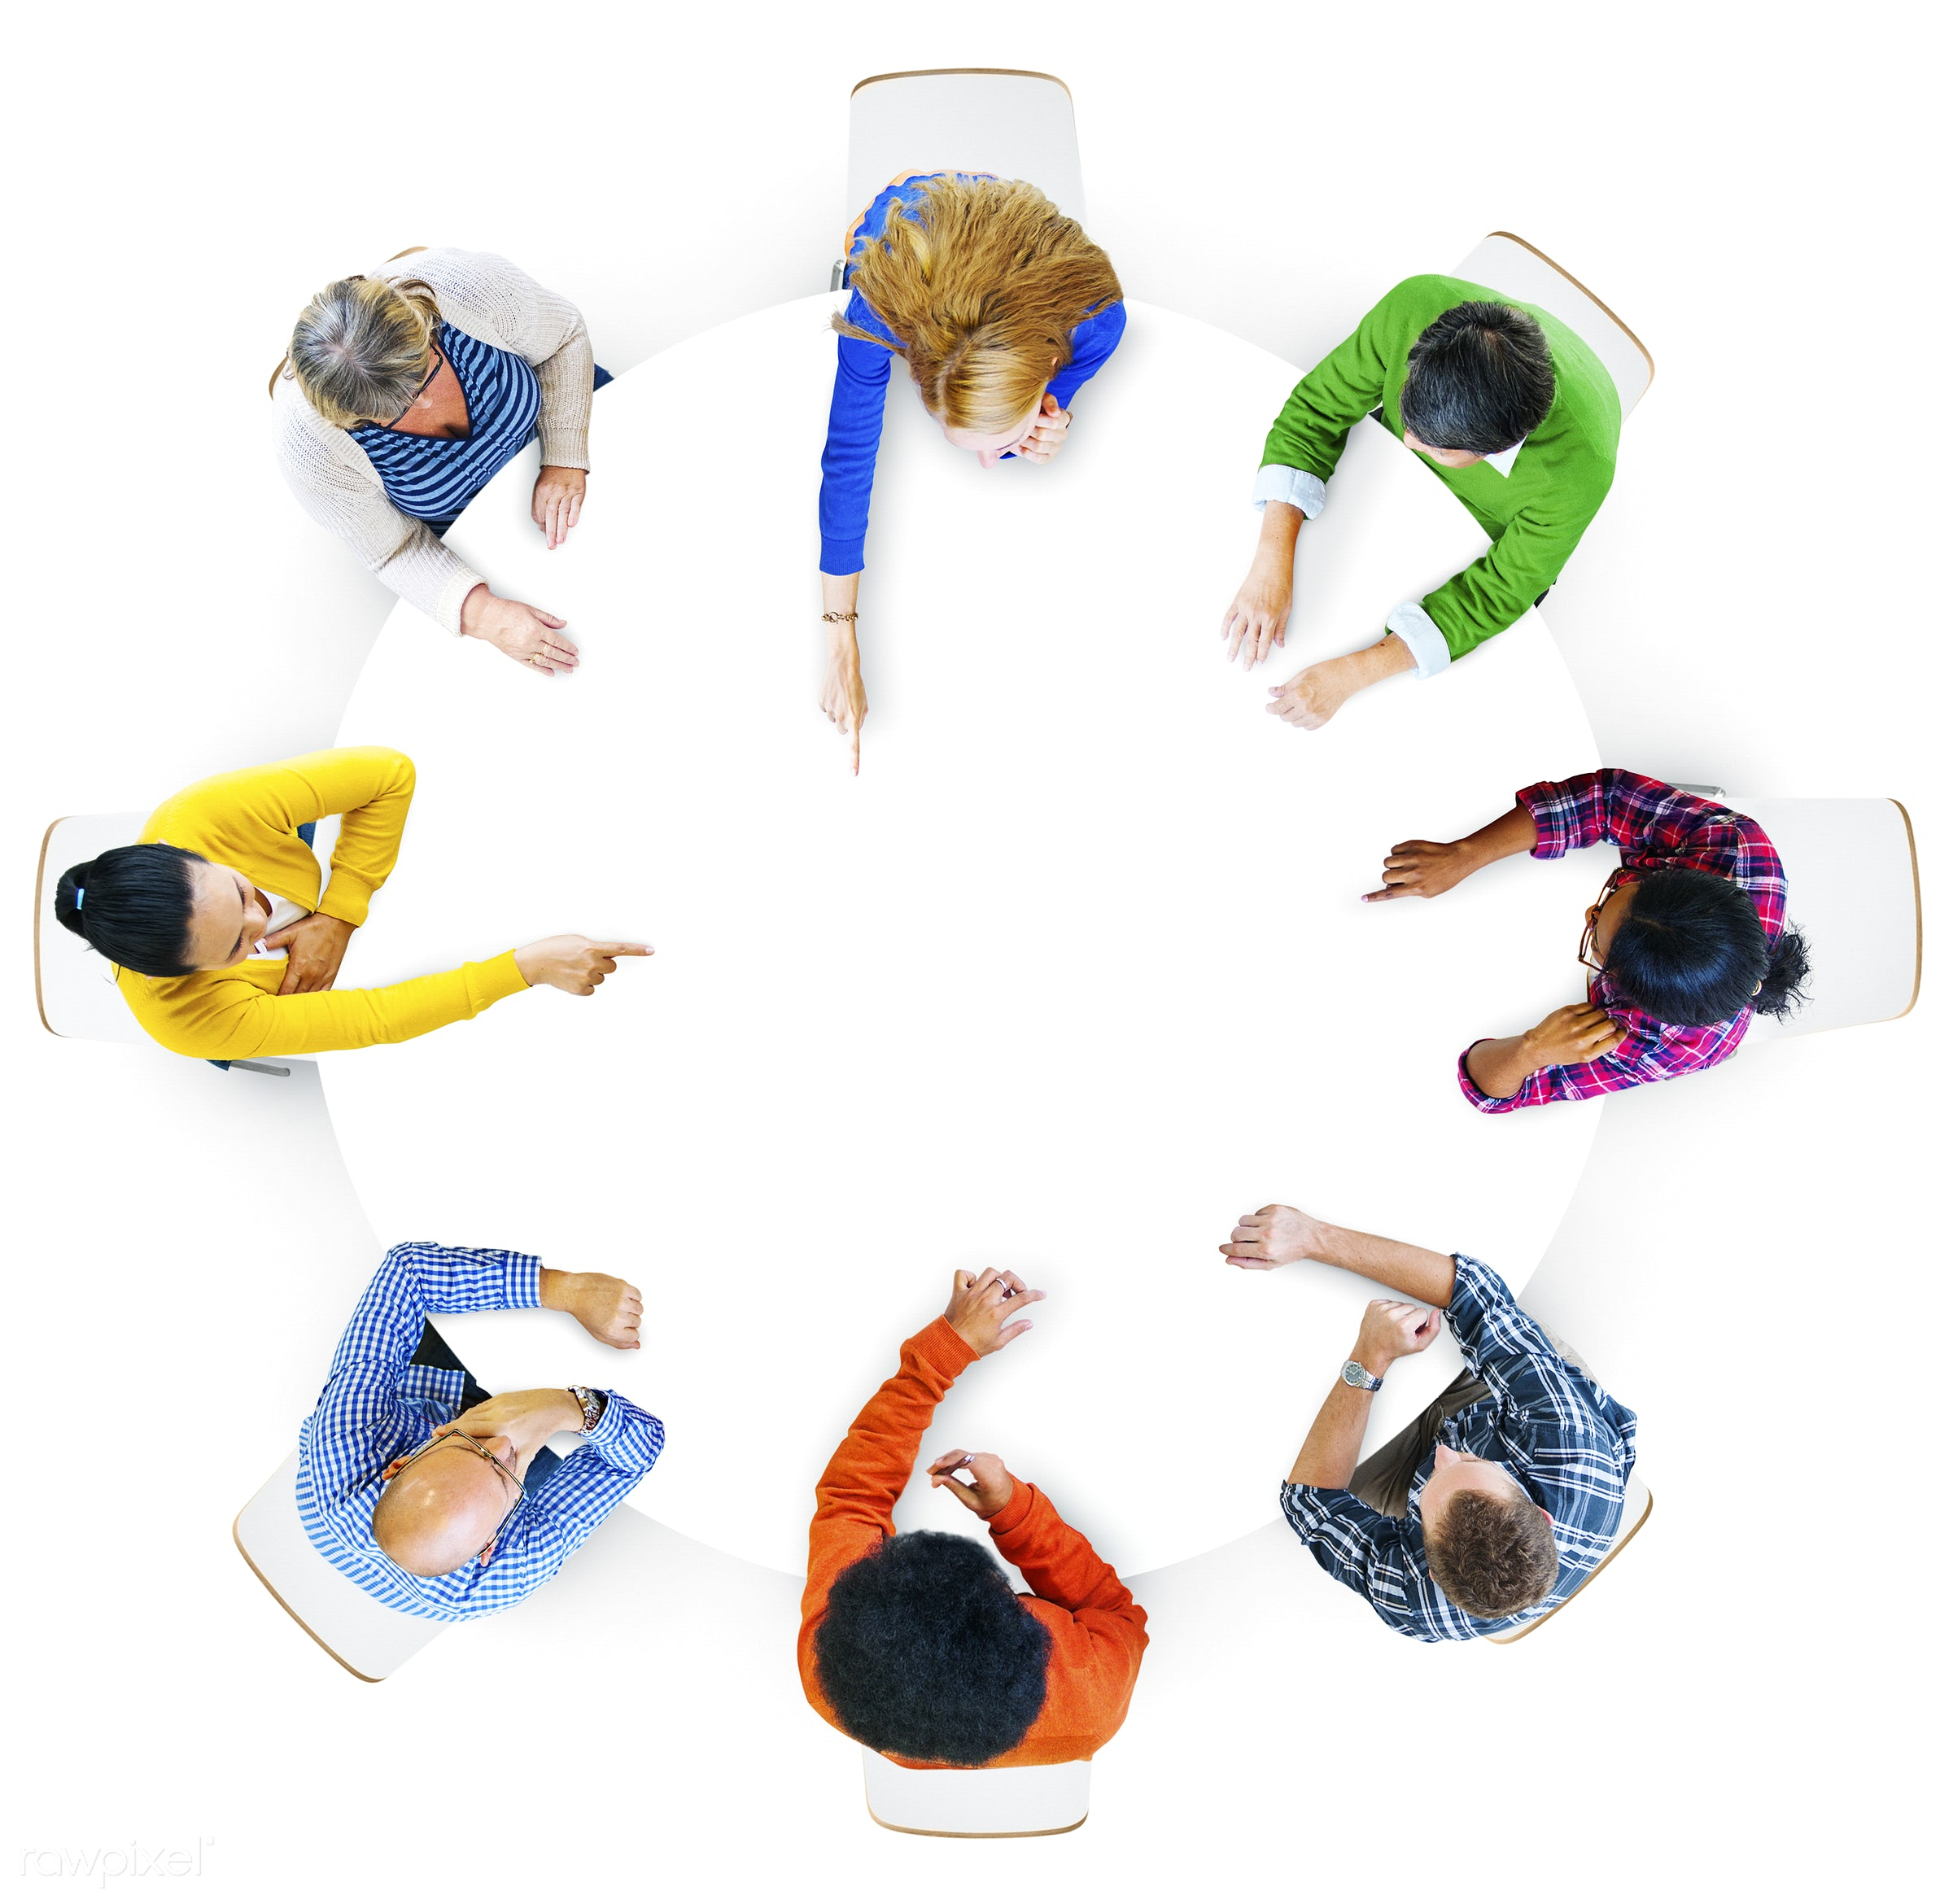 Aerial view of hands pointing in design space area - aerial, brainstorm, copy space, design space, discussion, diverse,...